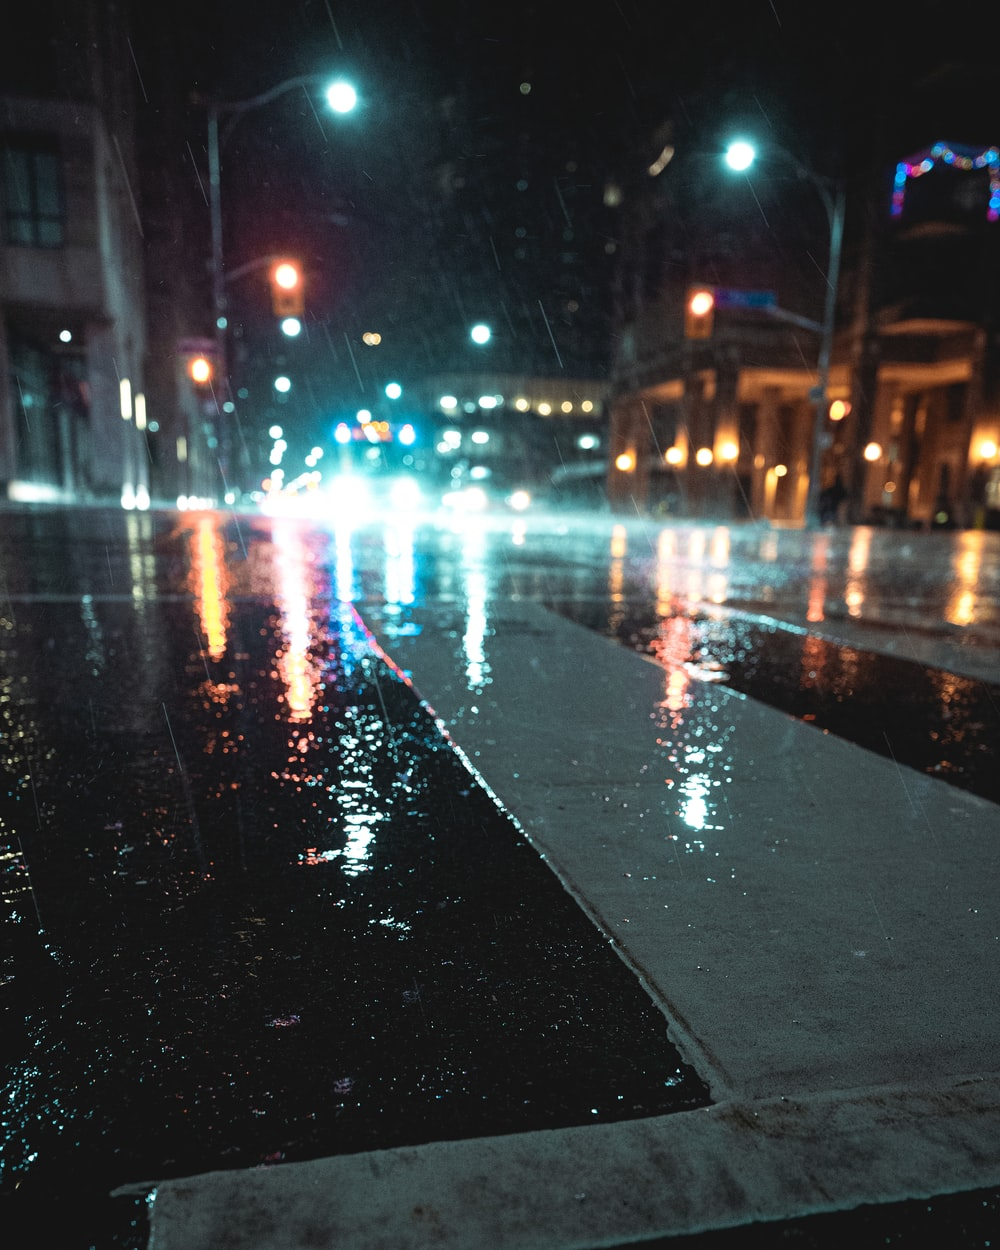 black asphalt road with cars during night time